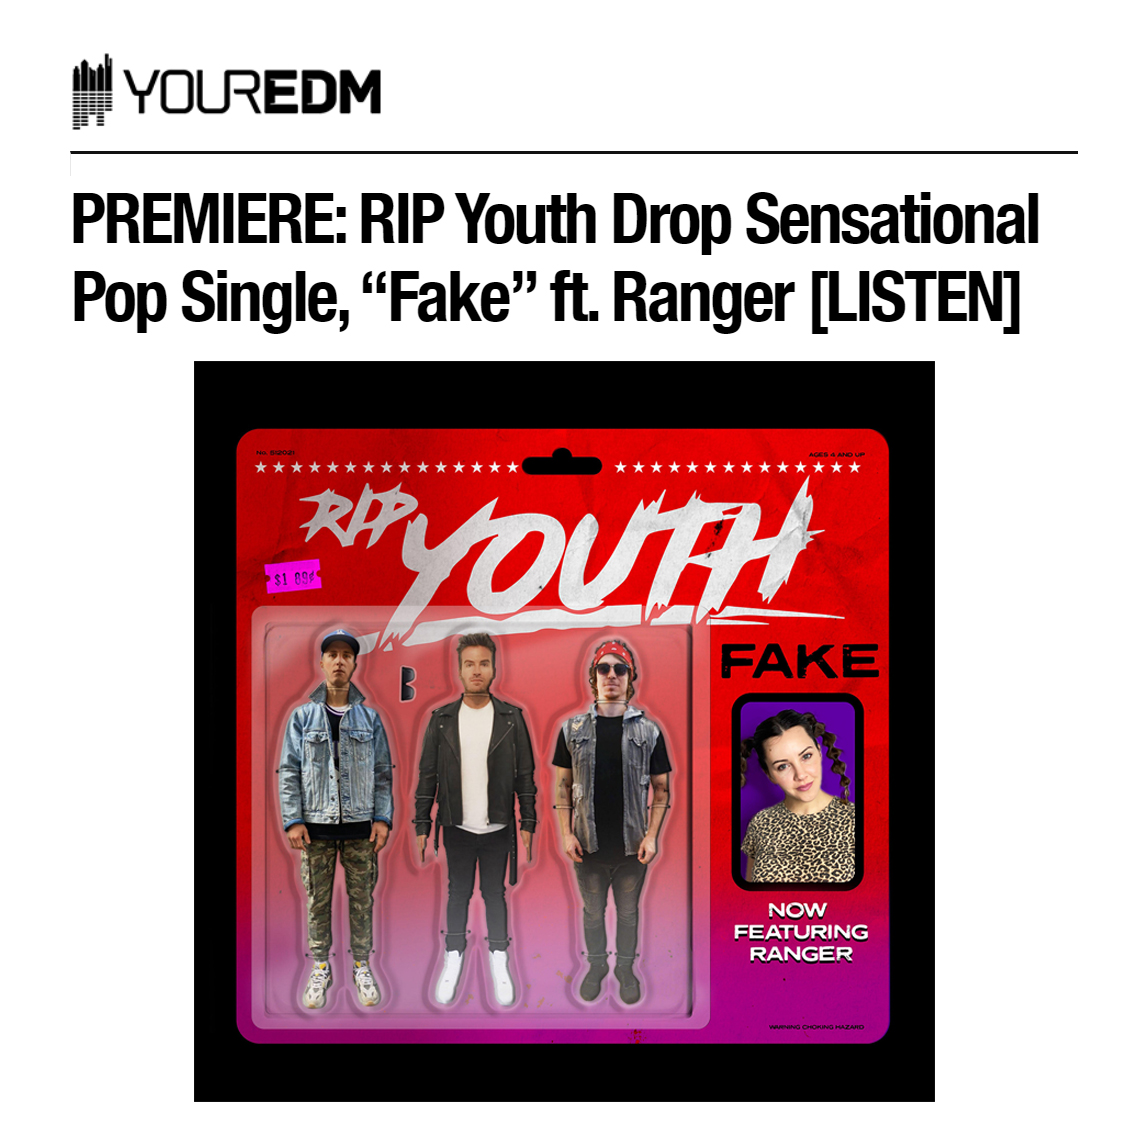 RIP Youth - Fake - Your EDM Premiere